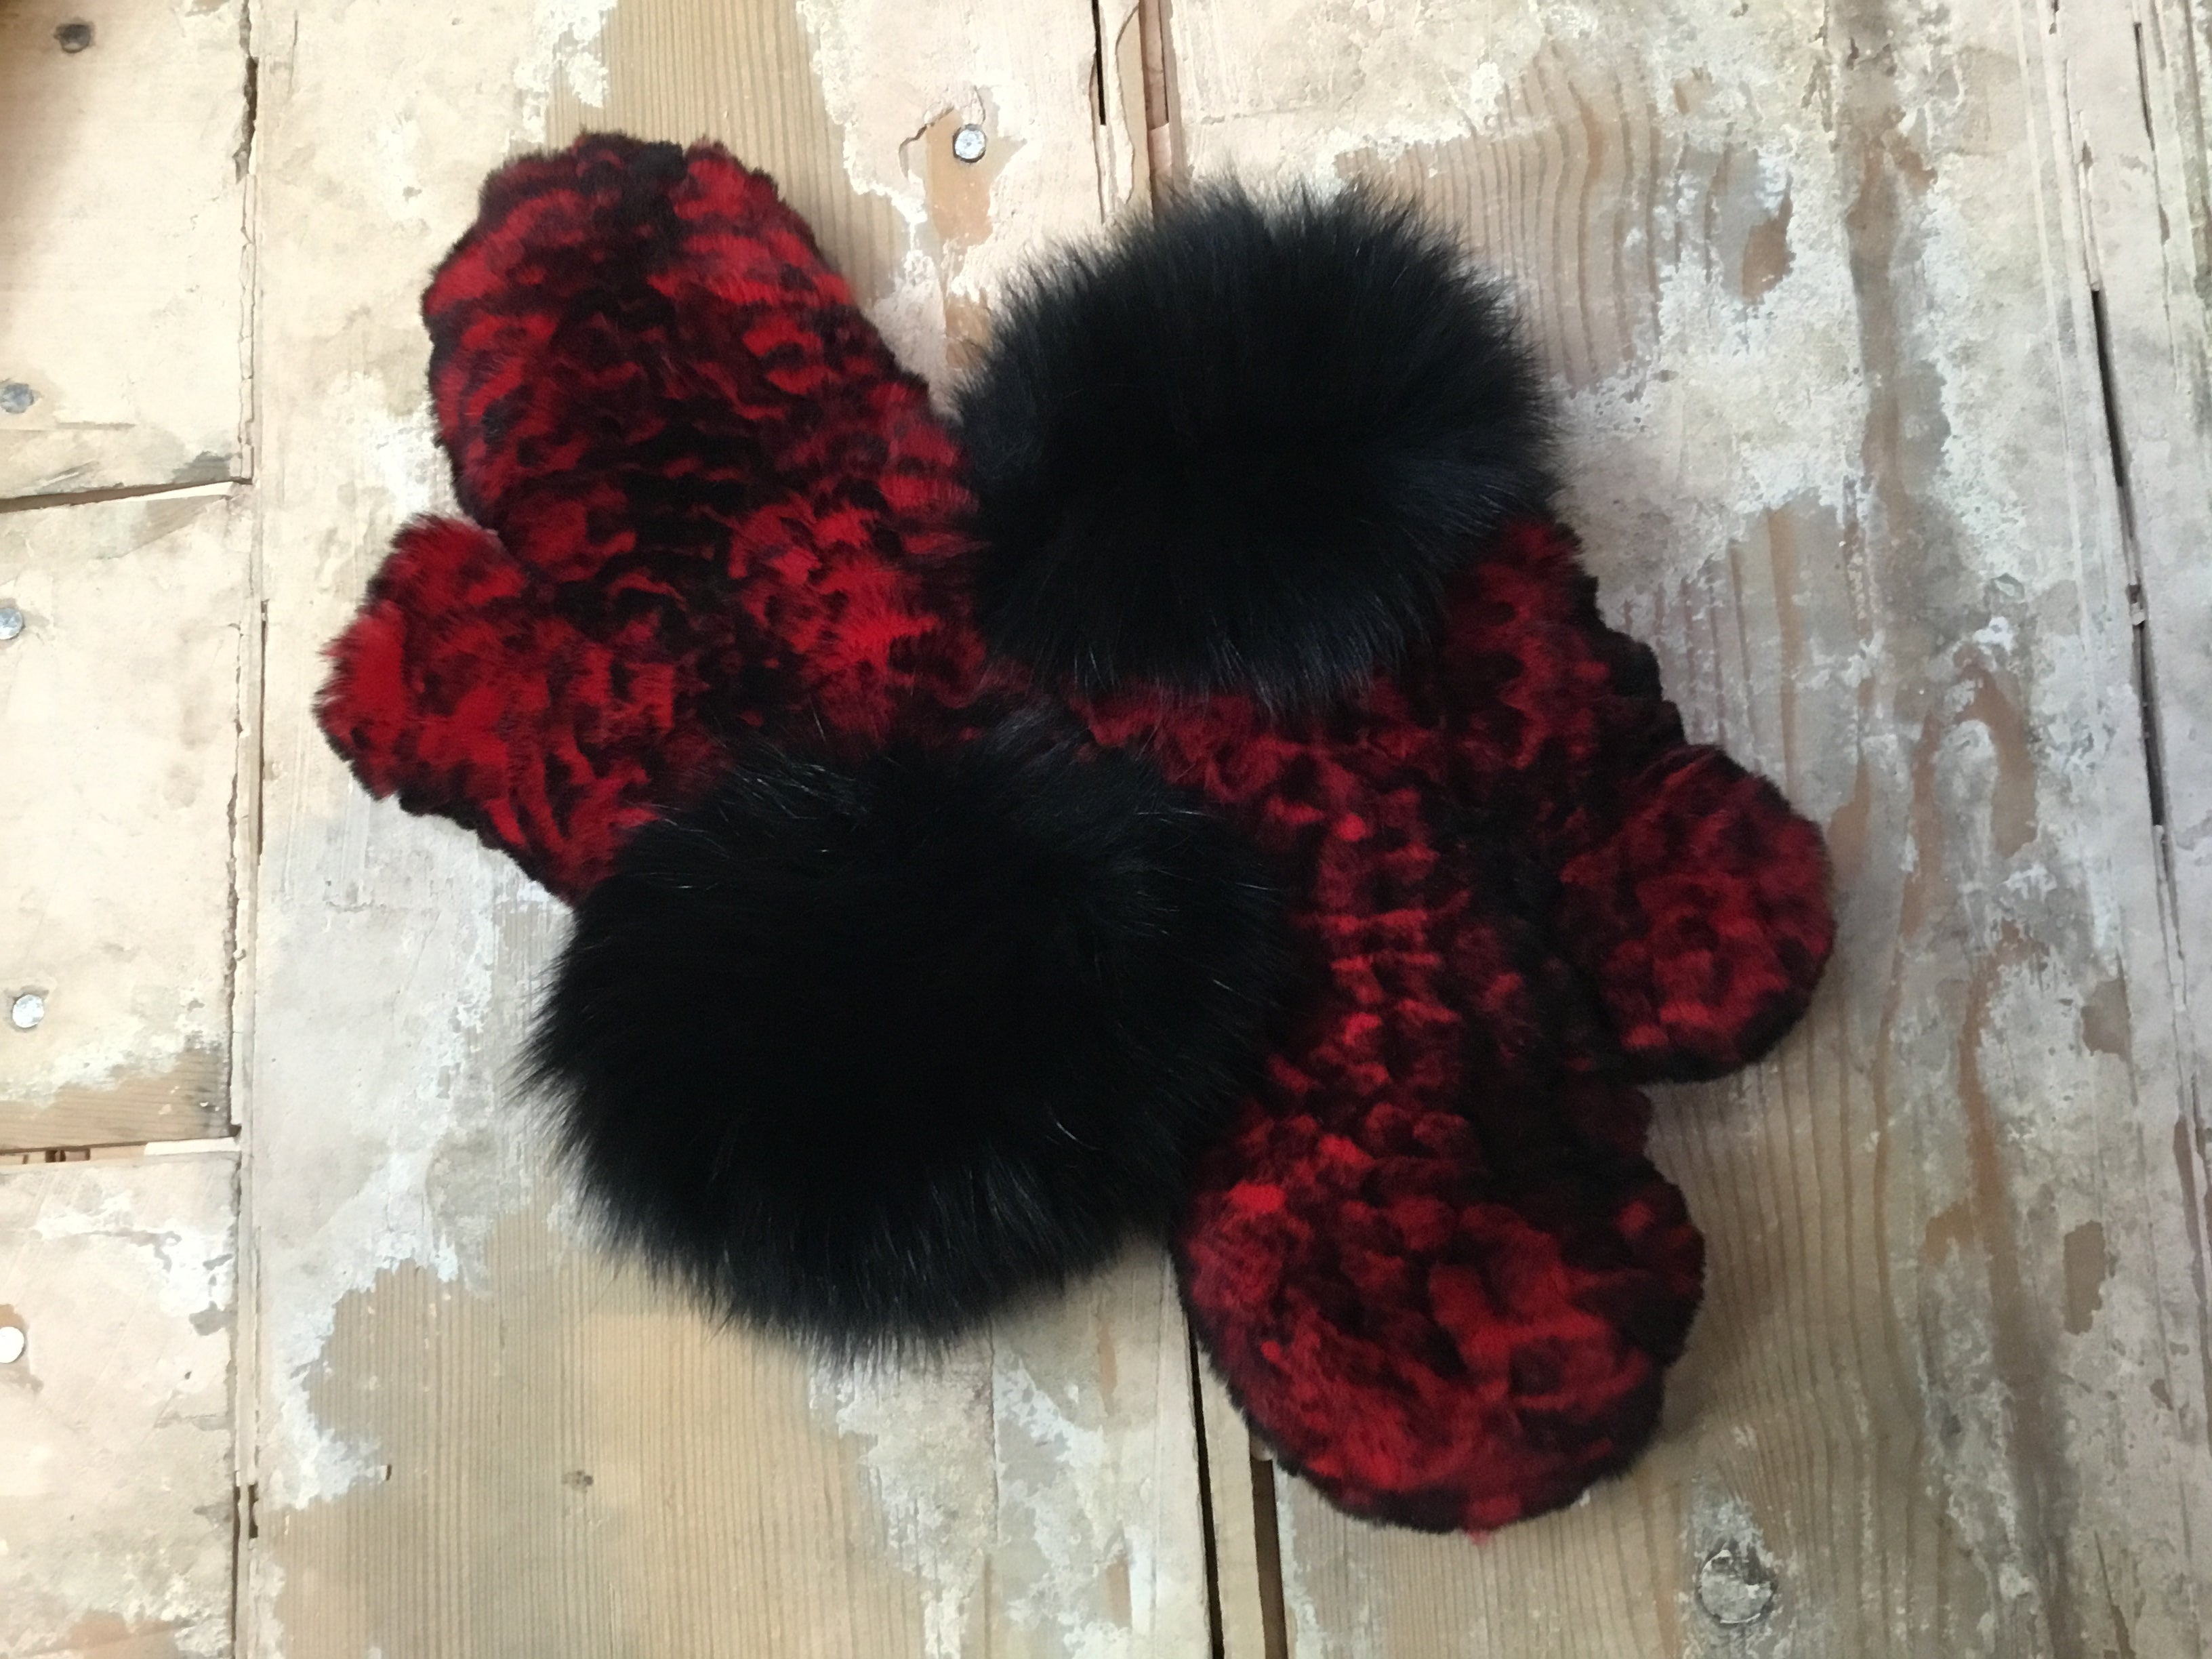 Knitted Mittens with Real Fox Fur in various colors